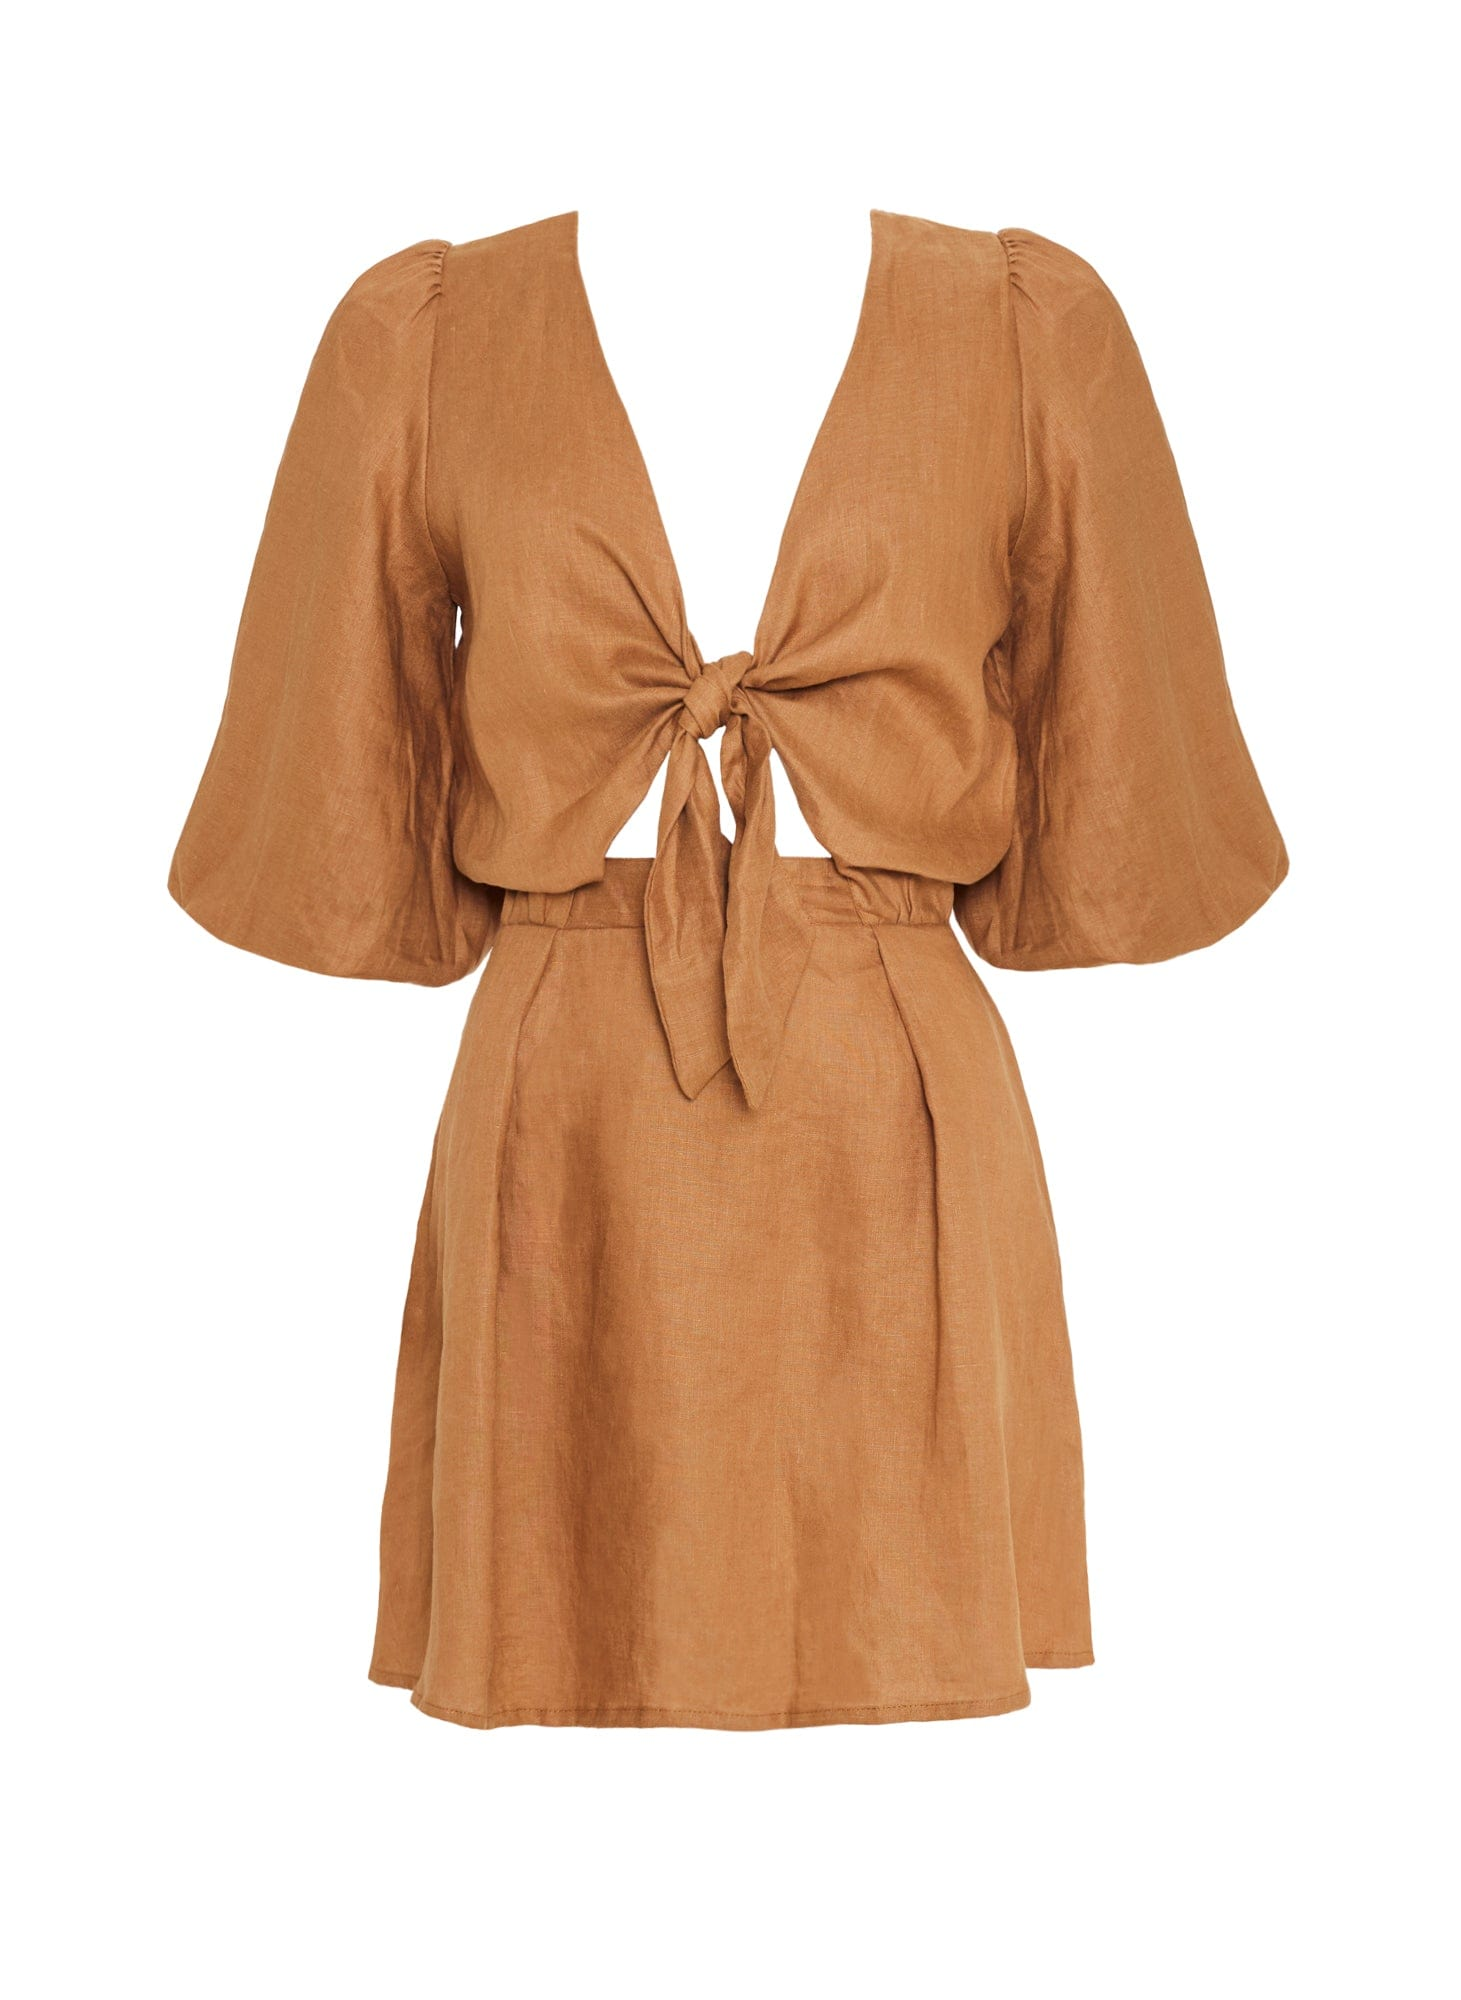 PLAIN CARAMEL - CAMILLE DRESS